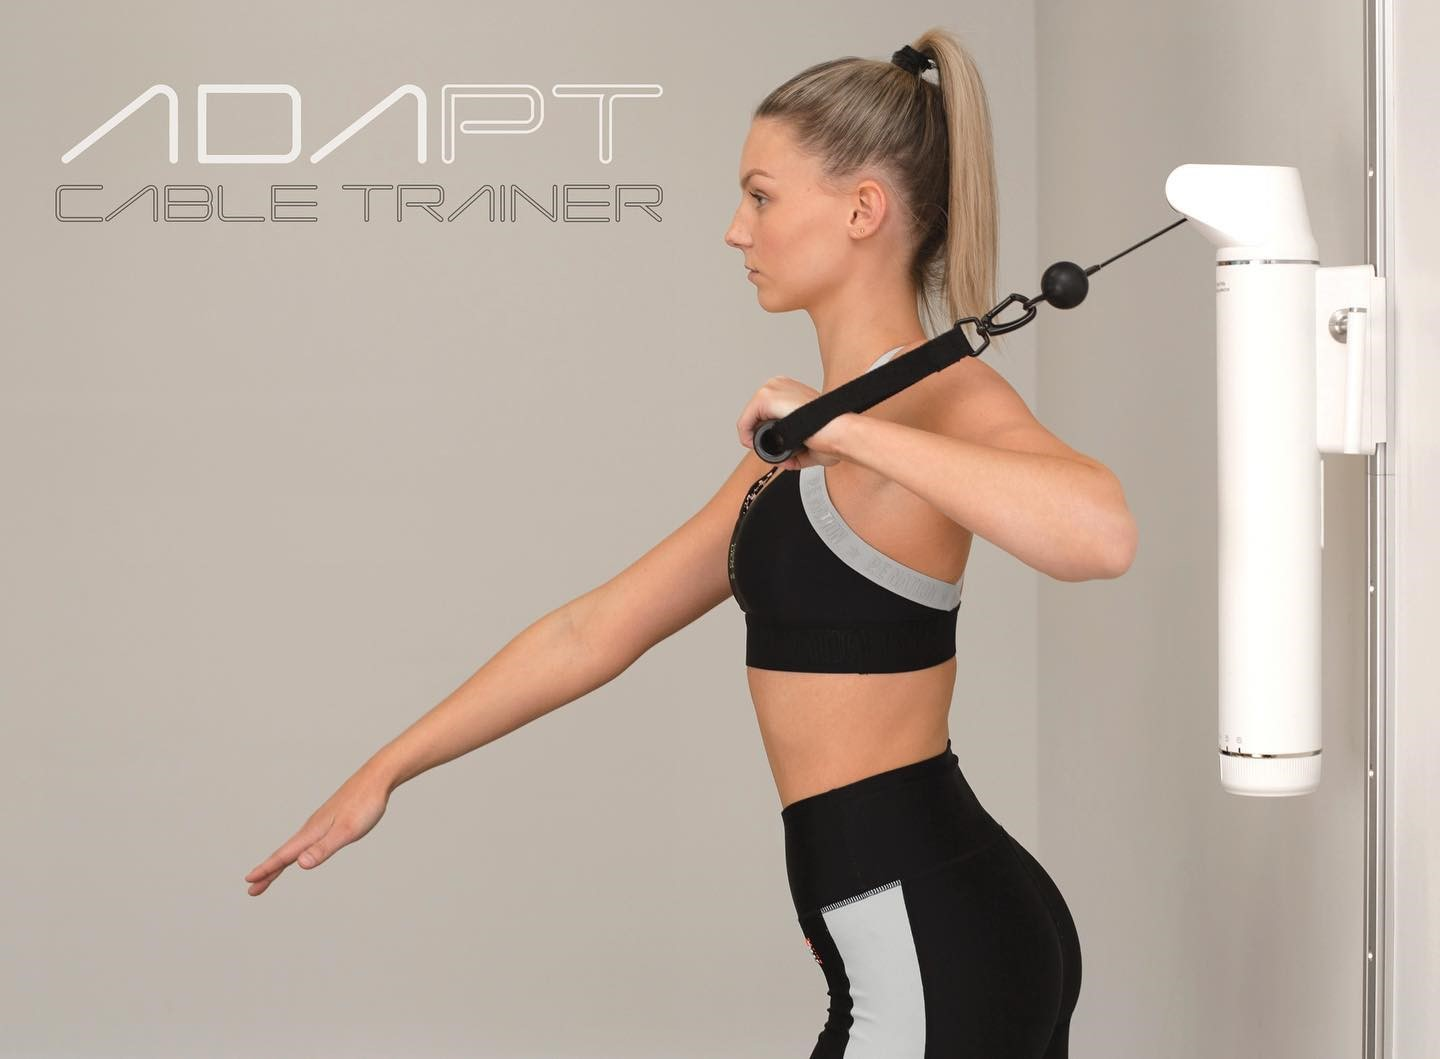 Fit4Life trae a España en exclusiva la Adapt Cable Trainer